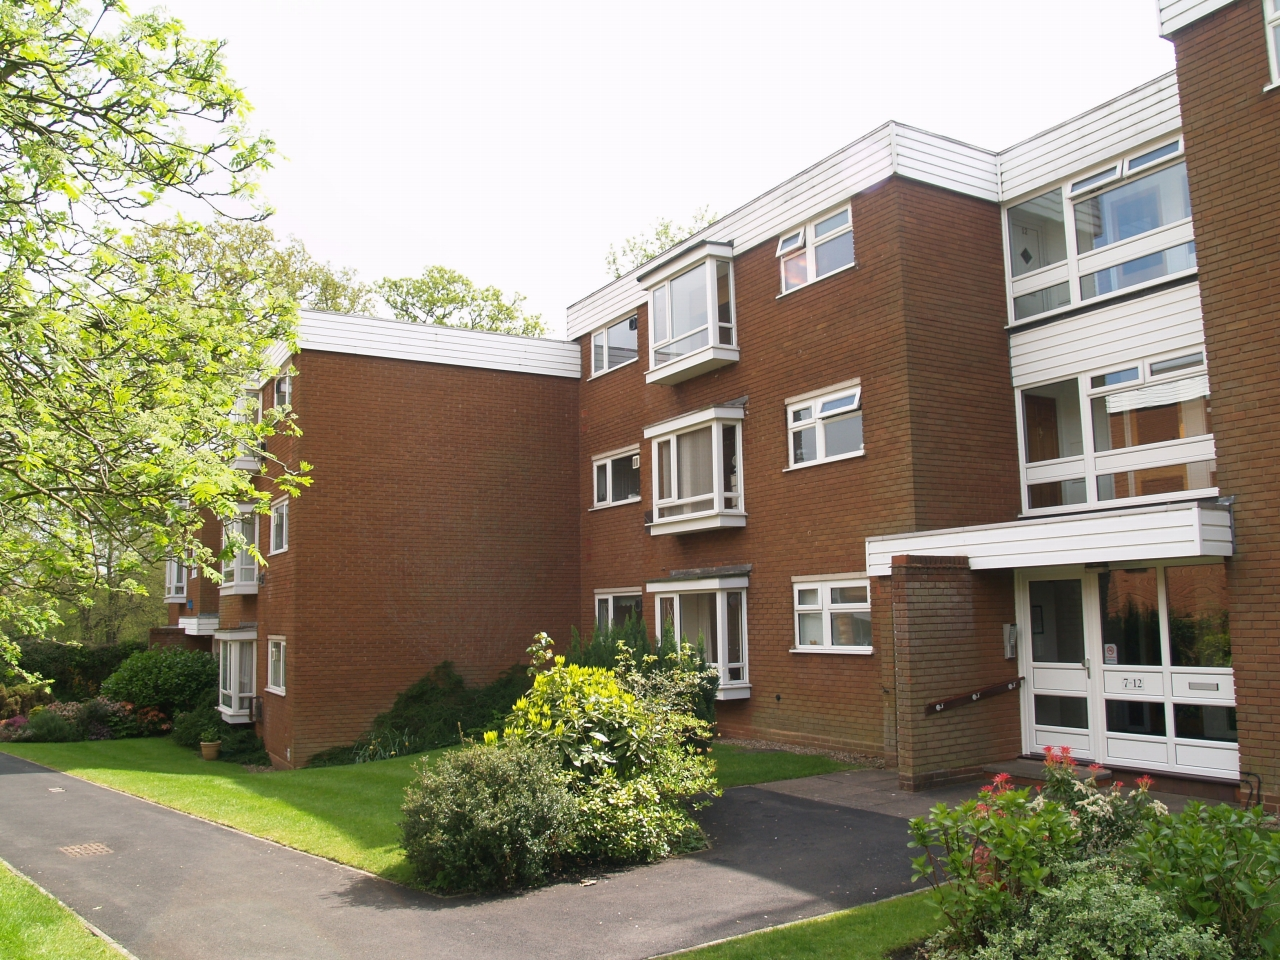 2 bedroom ground floor apartment SSTC in Solihull - Main Image.